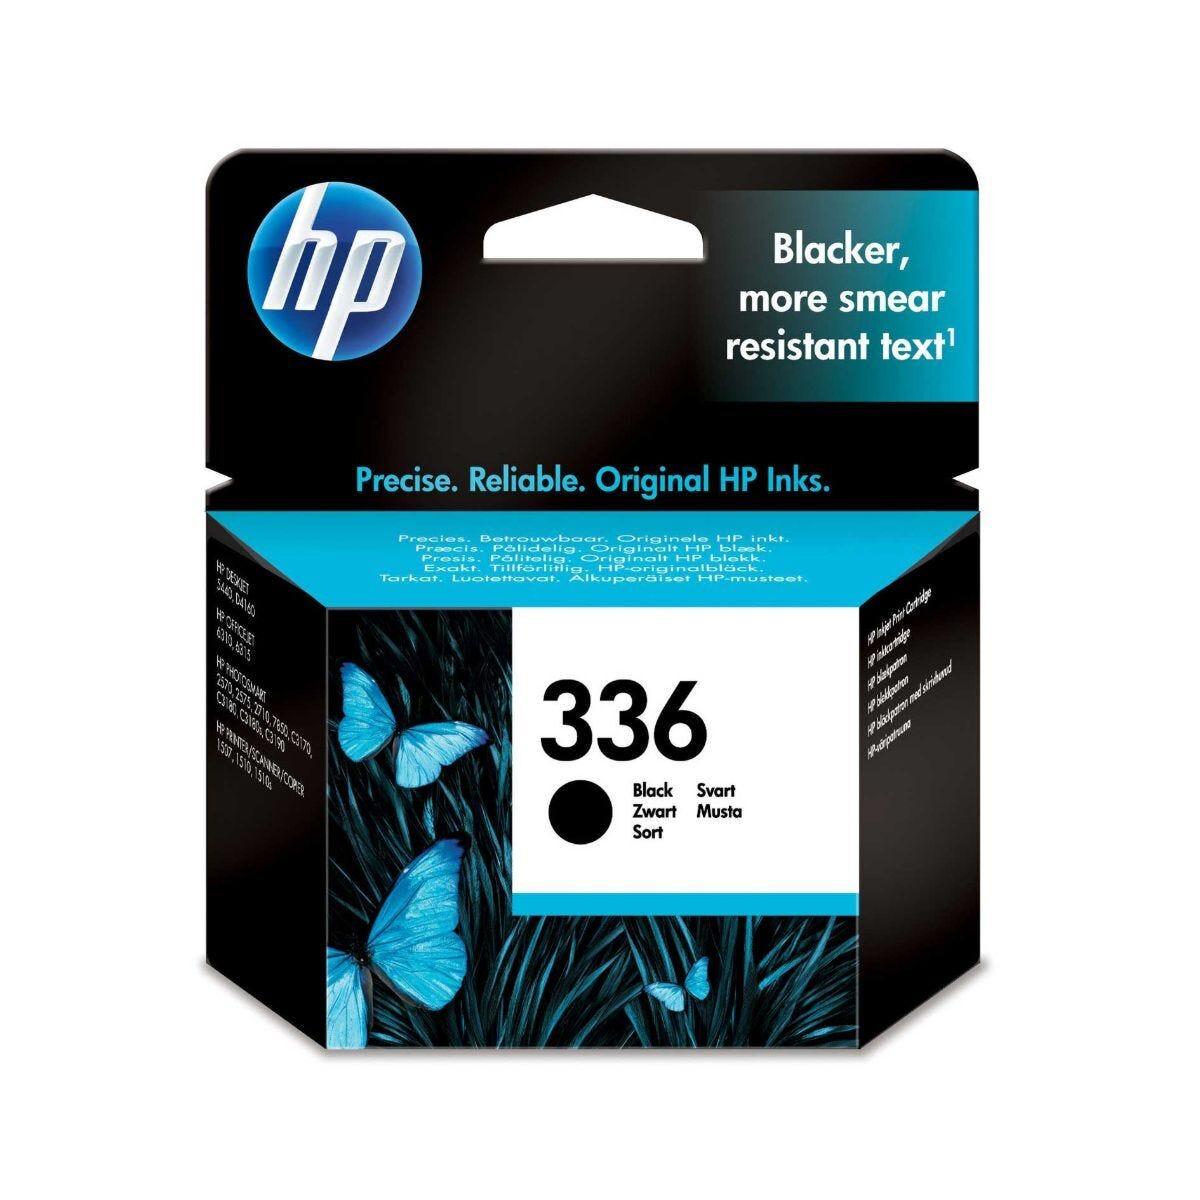 HP 336 Ink Cartridge 5ml